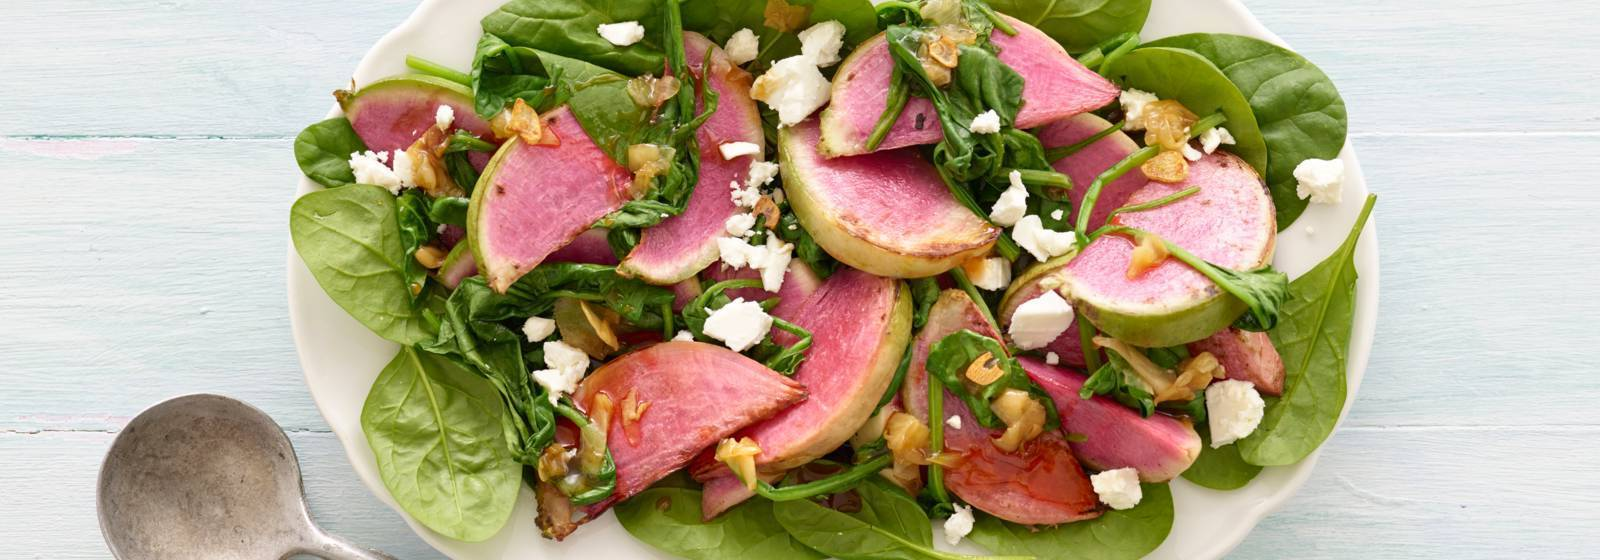 Stir-fried watermelon radish with ginger and honey